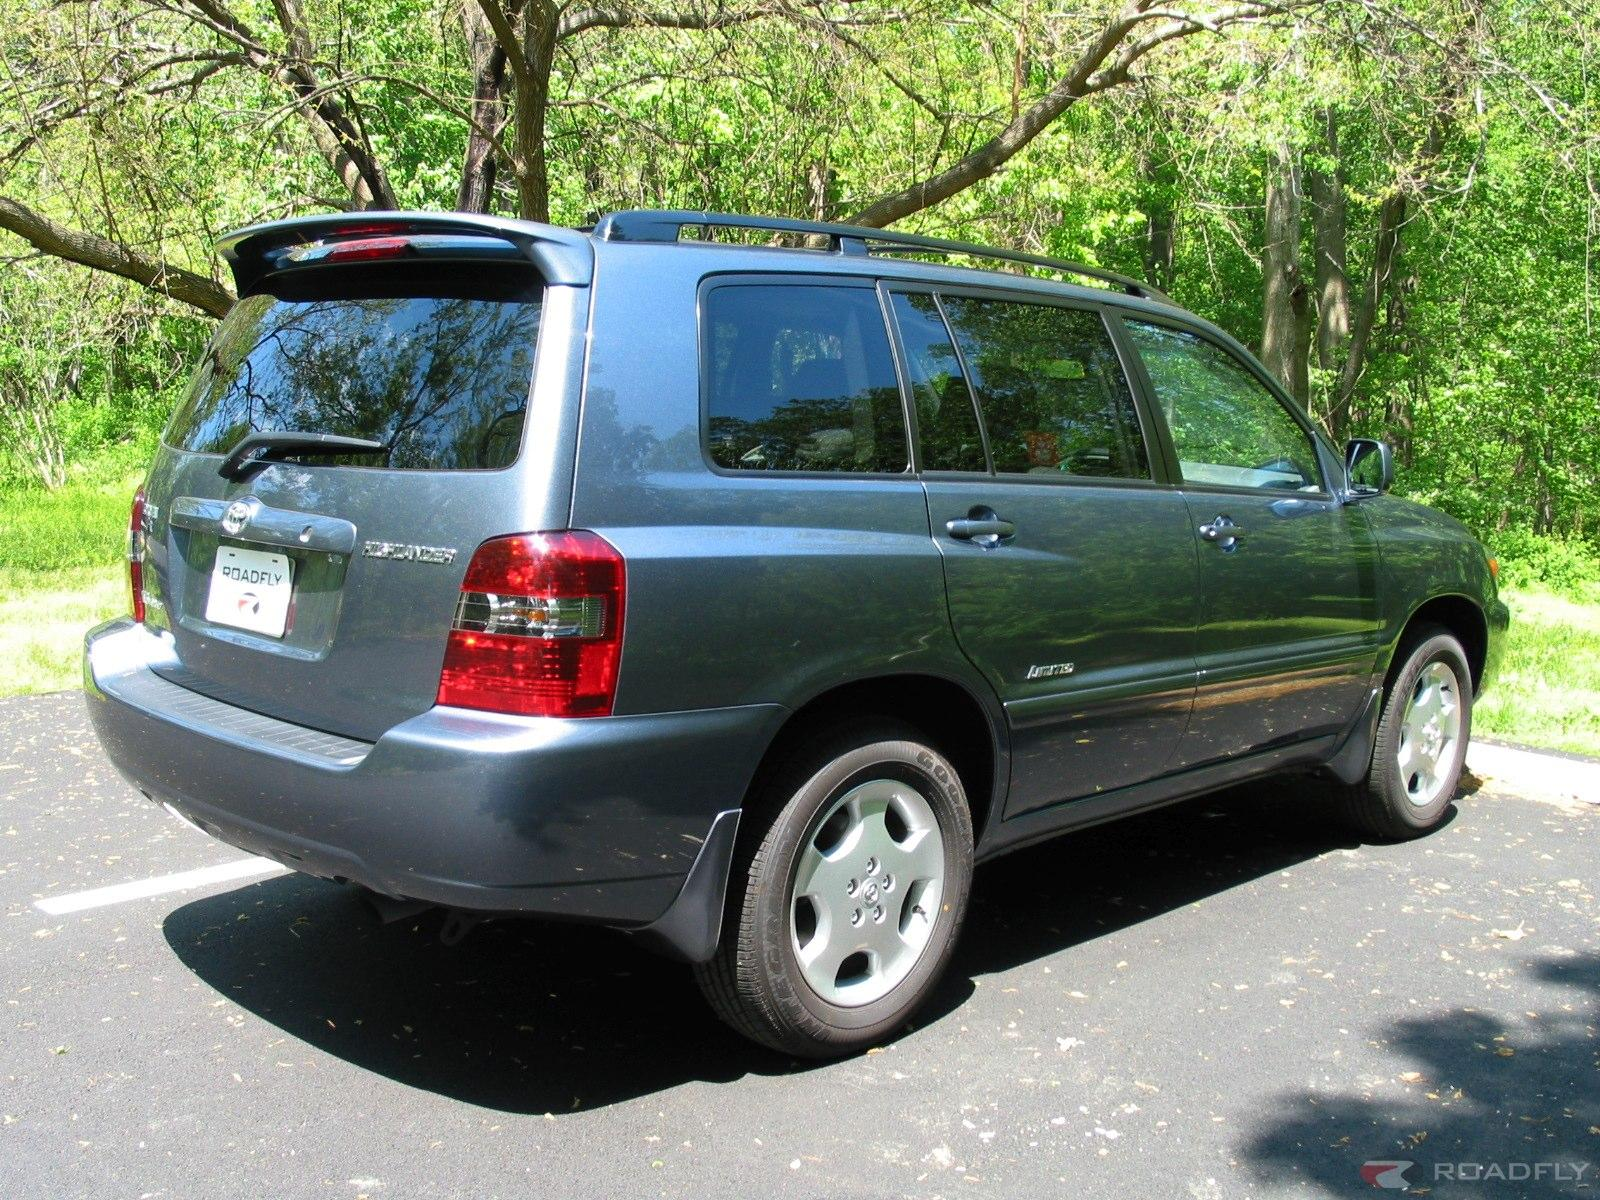 2007 toyota highlander information and photos zombiedrive. Black Bedroom Furniture Sets. Home Design Ideas